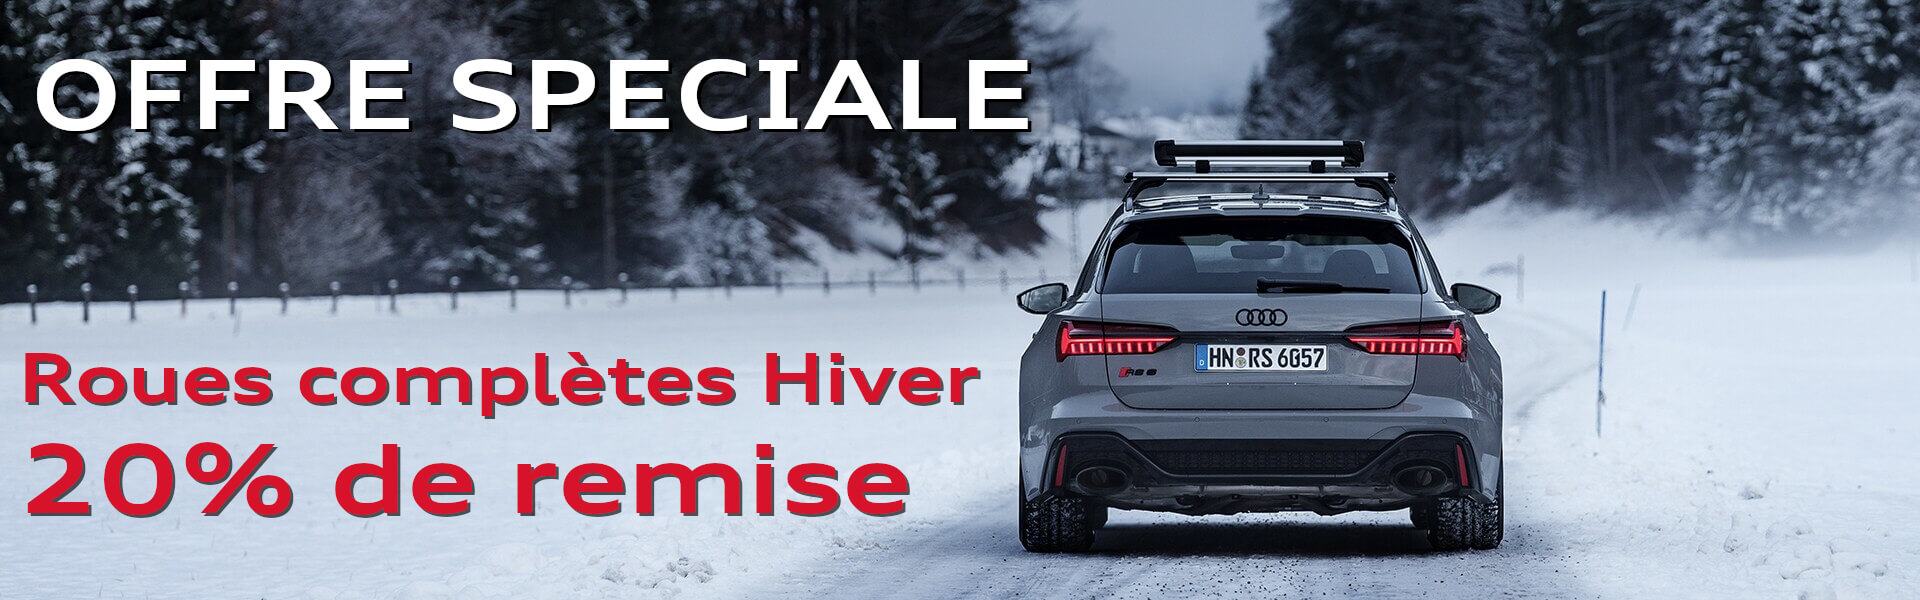 Promotion roues completes hiver audi